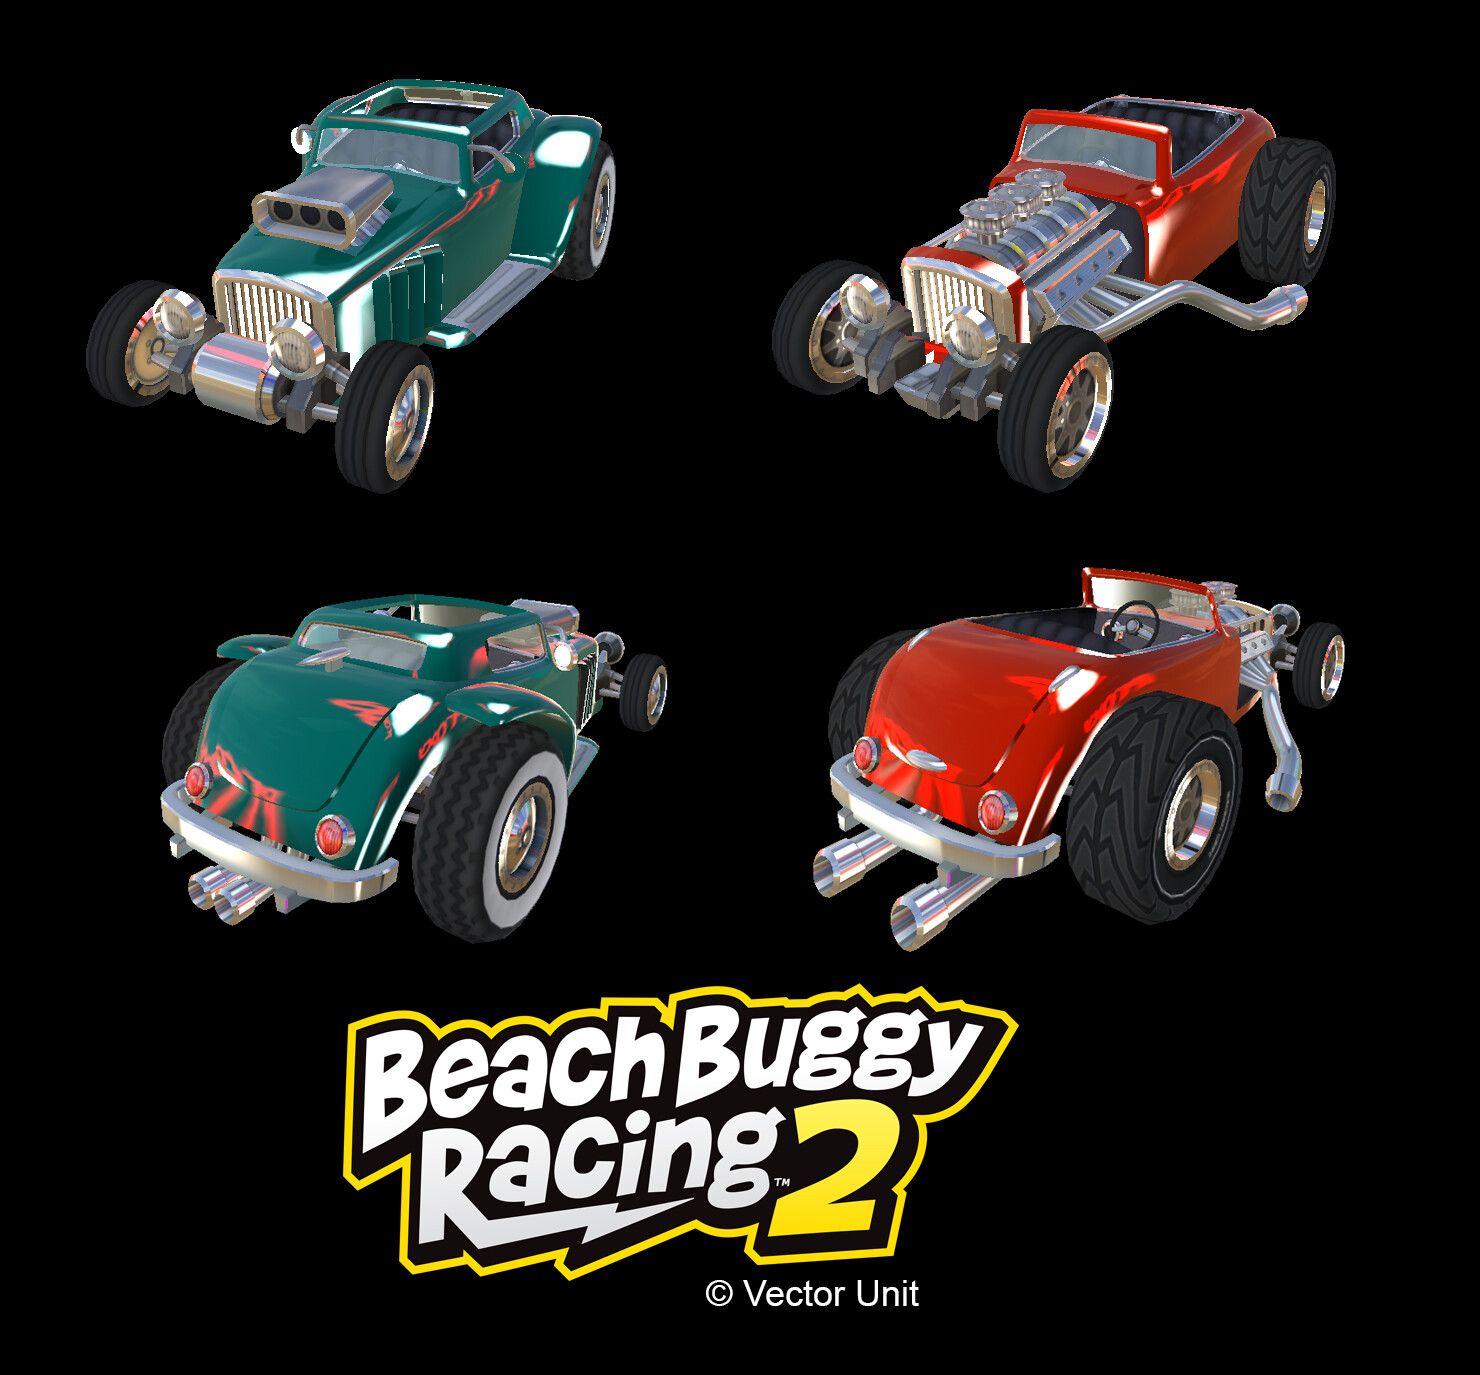 Beach Buggy Racing 2 Vehicles: Hotrod Configurations